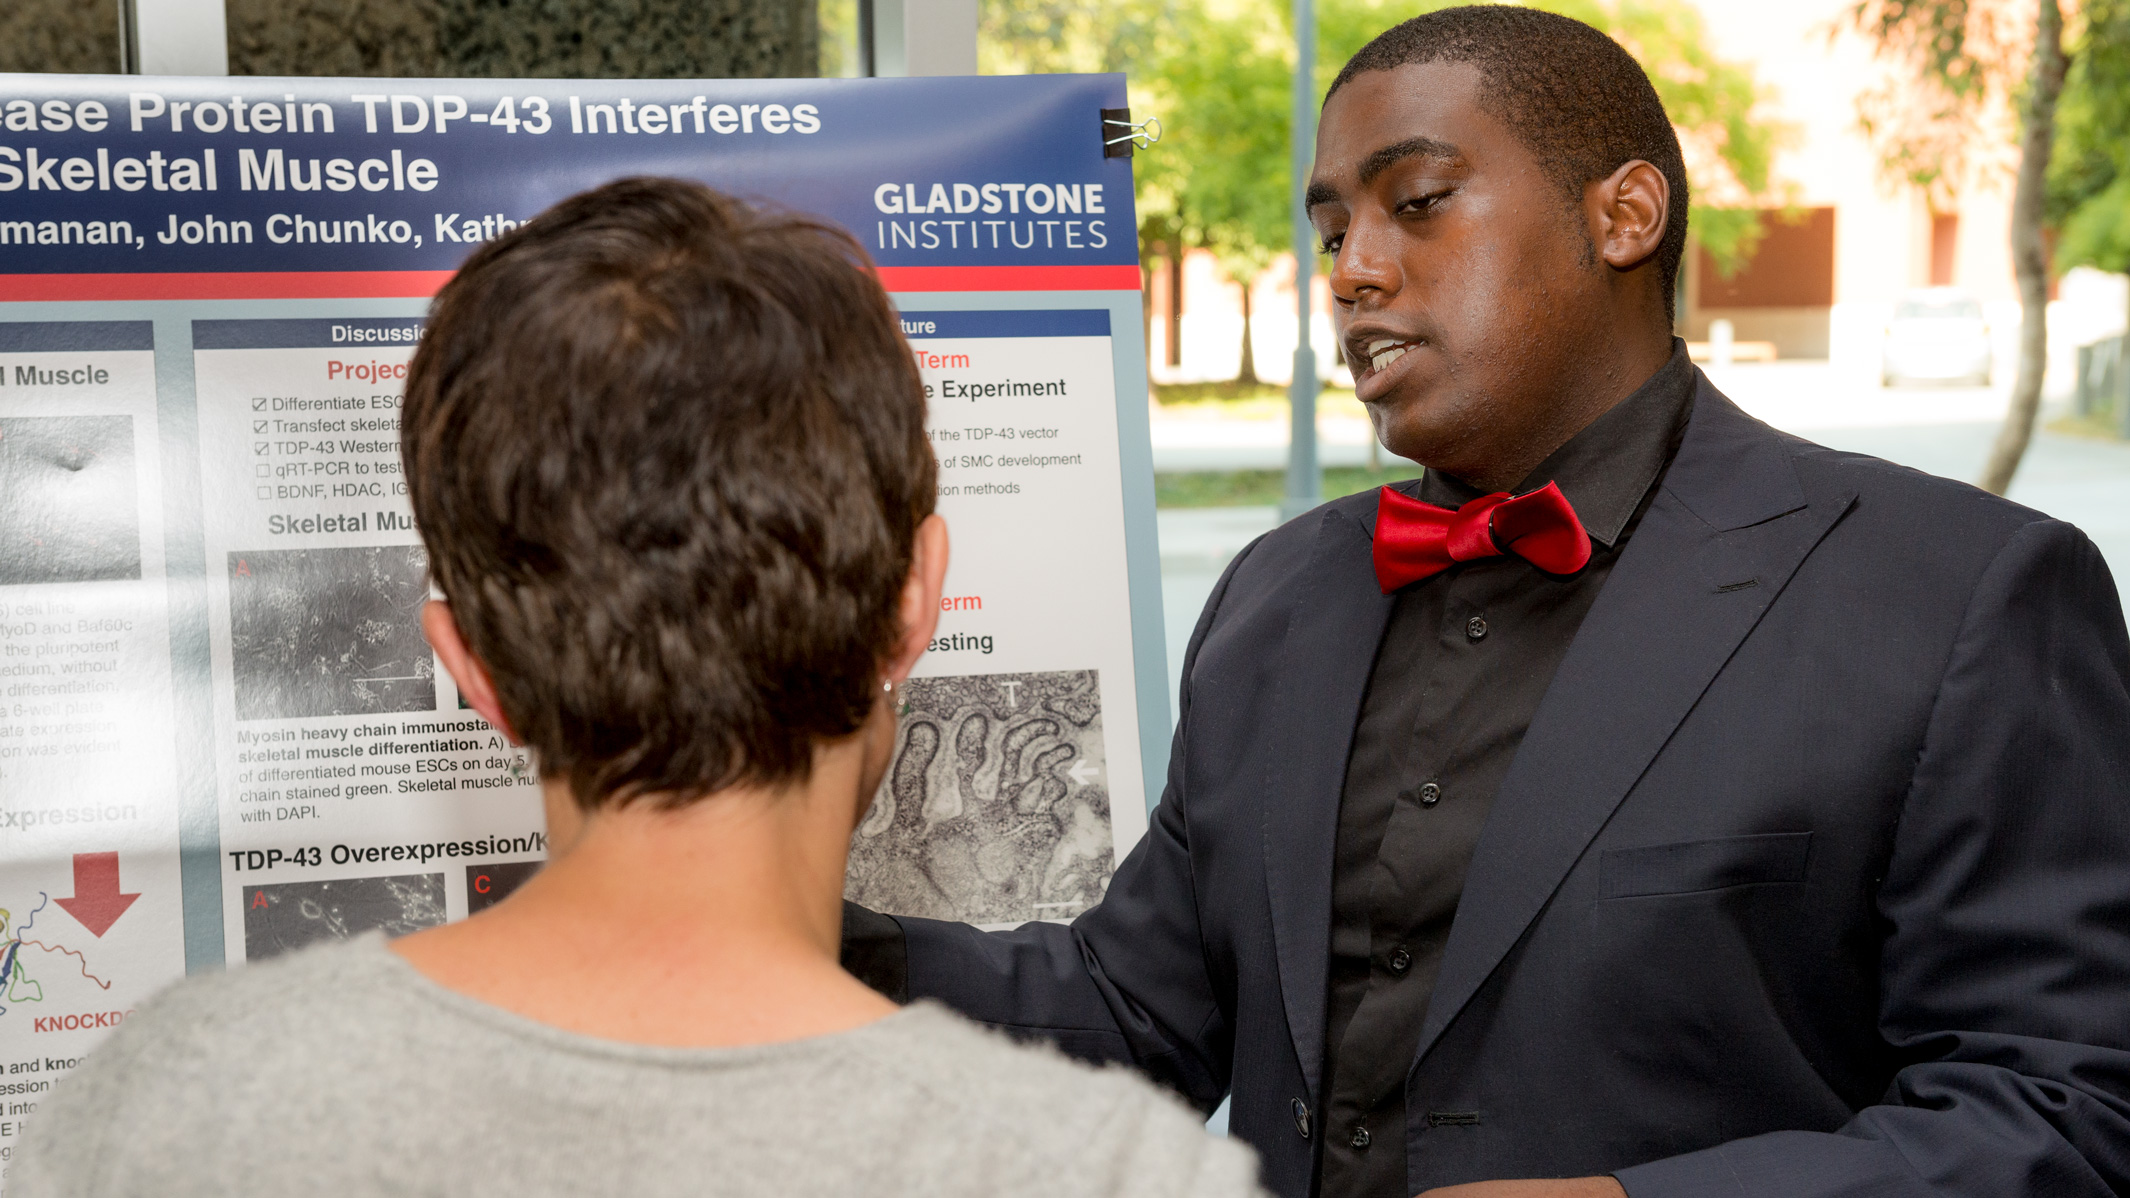 PUMAS intern Damon Williams presenting a poster during his internship